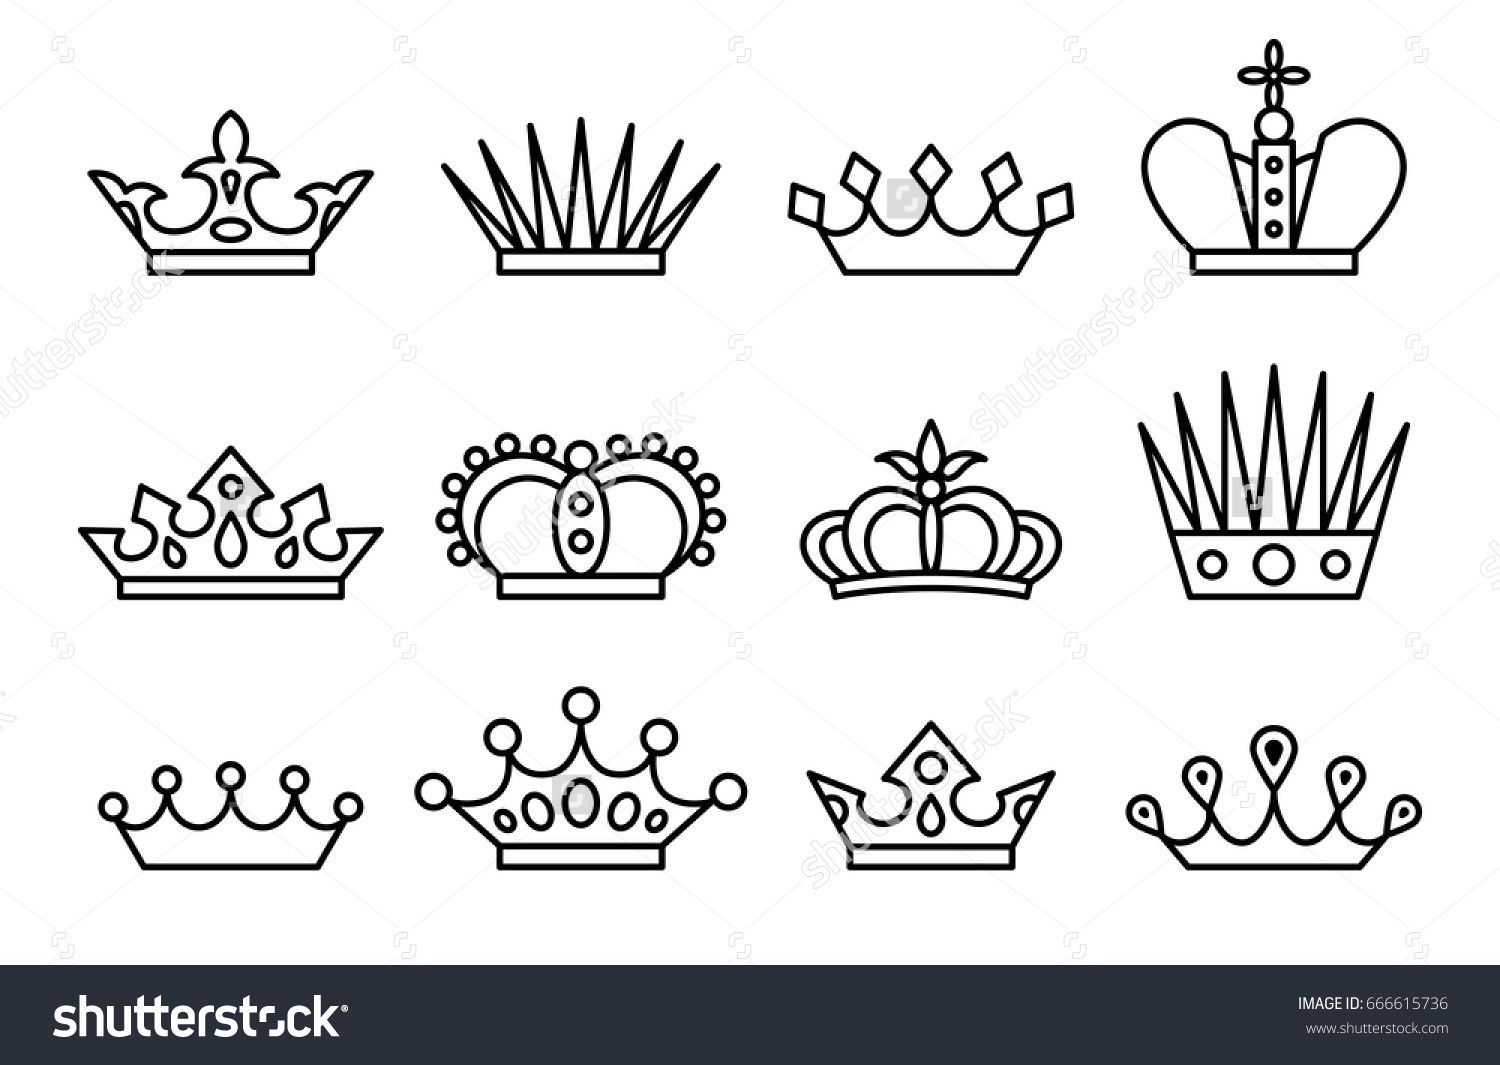 King And Queen Crowns Vector